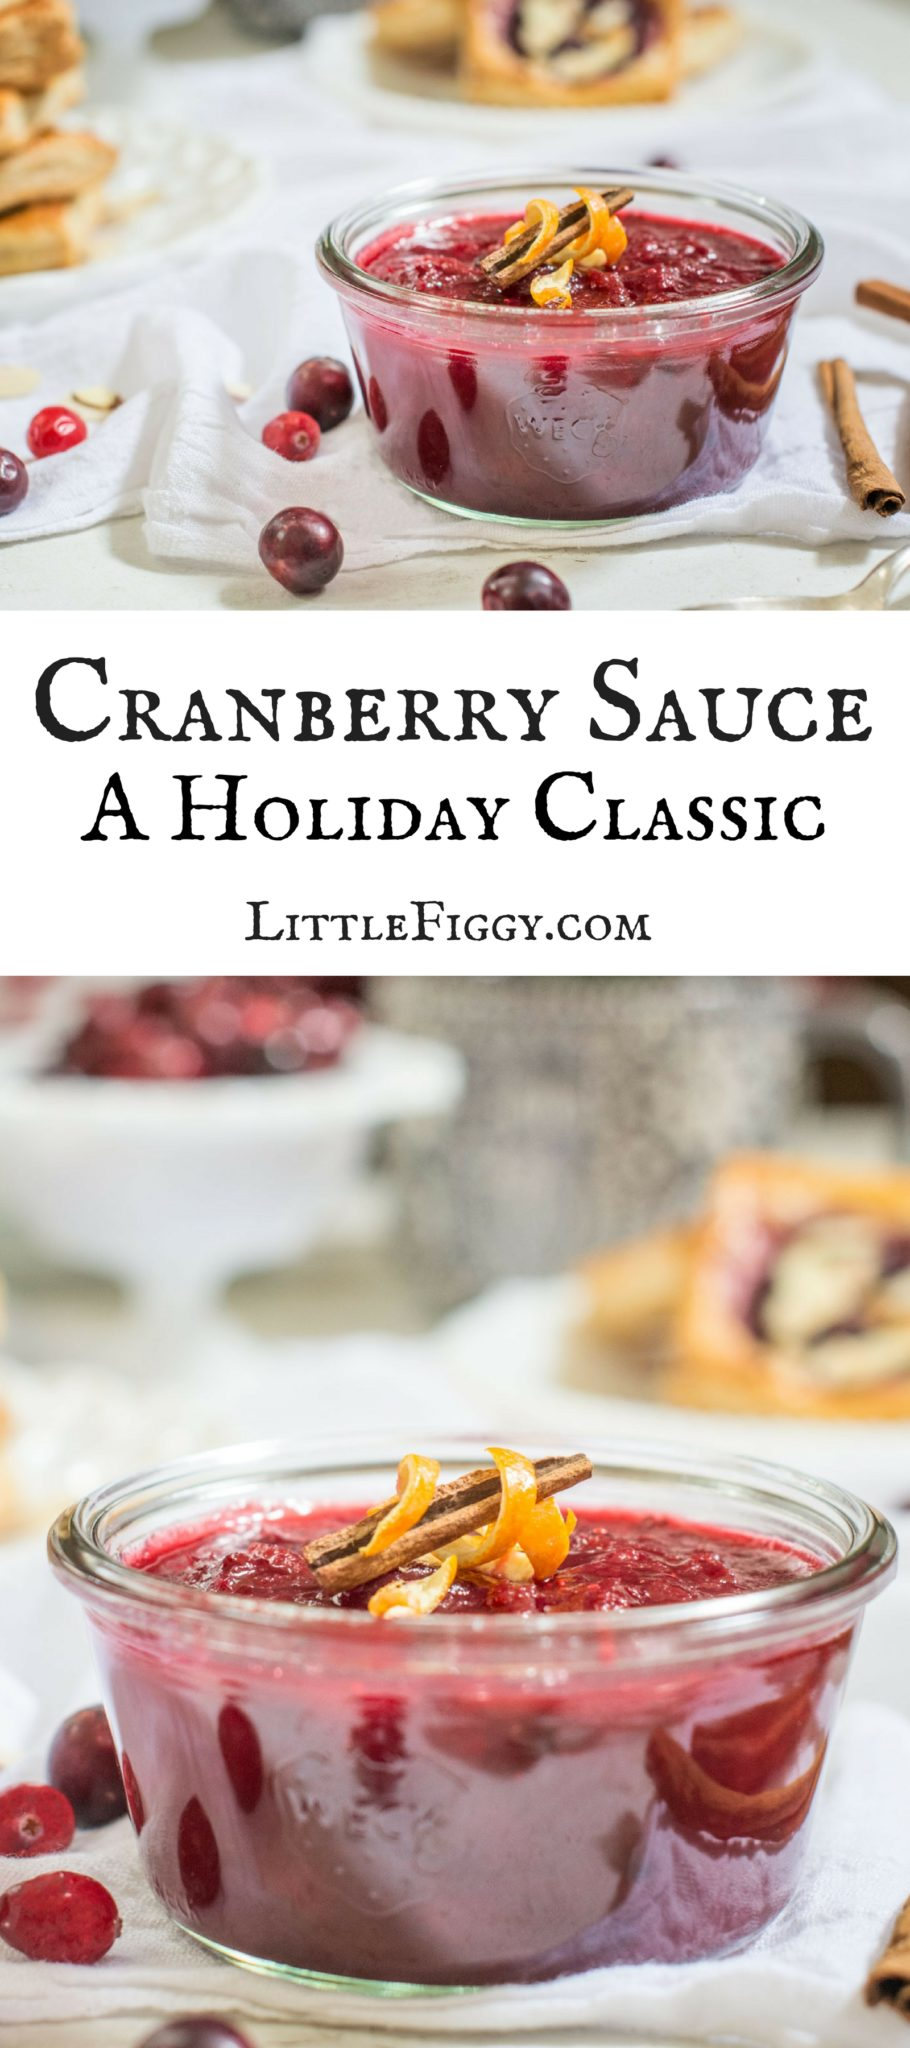 Easy to Make Cranberry Sauce, a Holiday Classic! Get the recipe at Little Figgy Food!